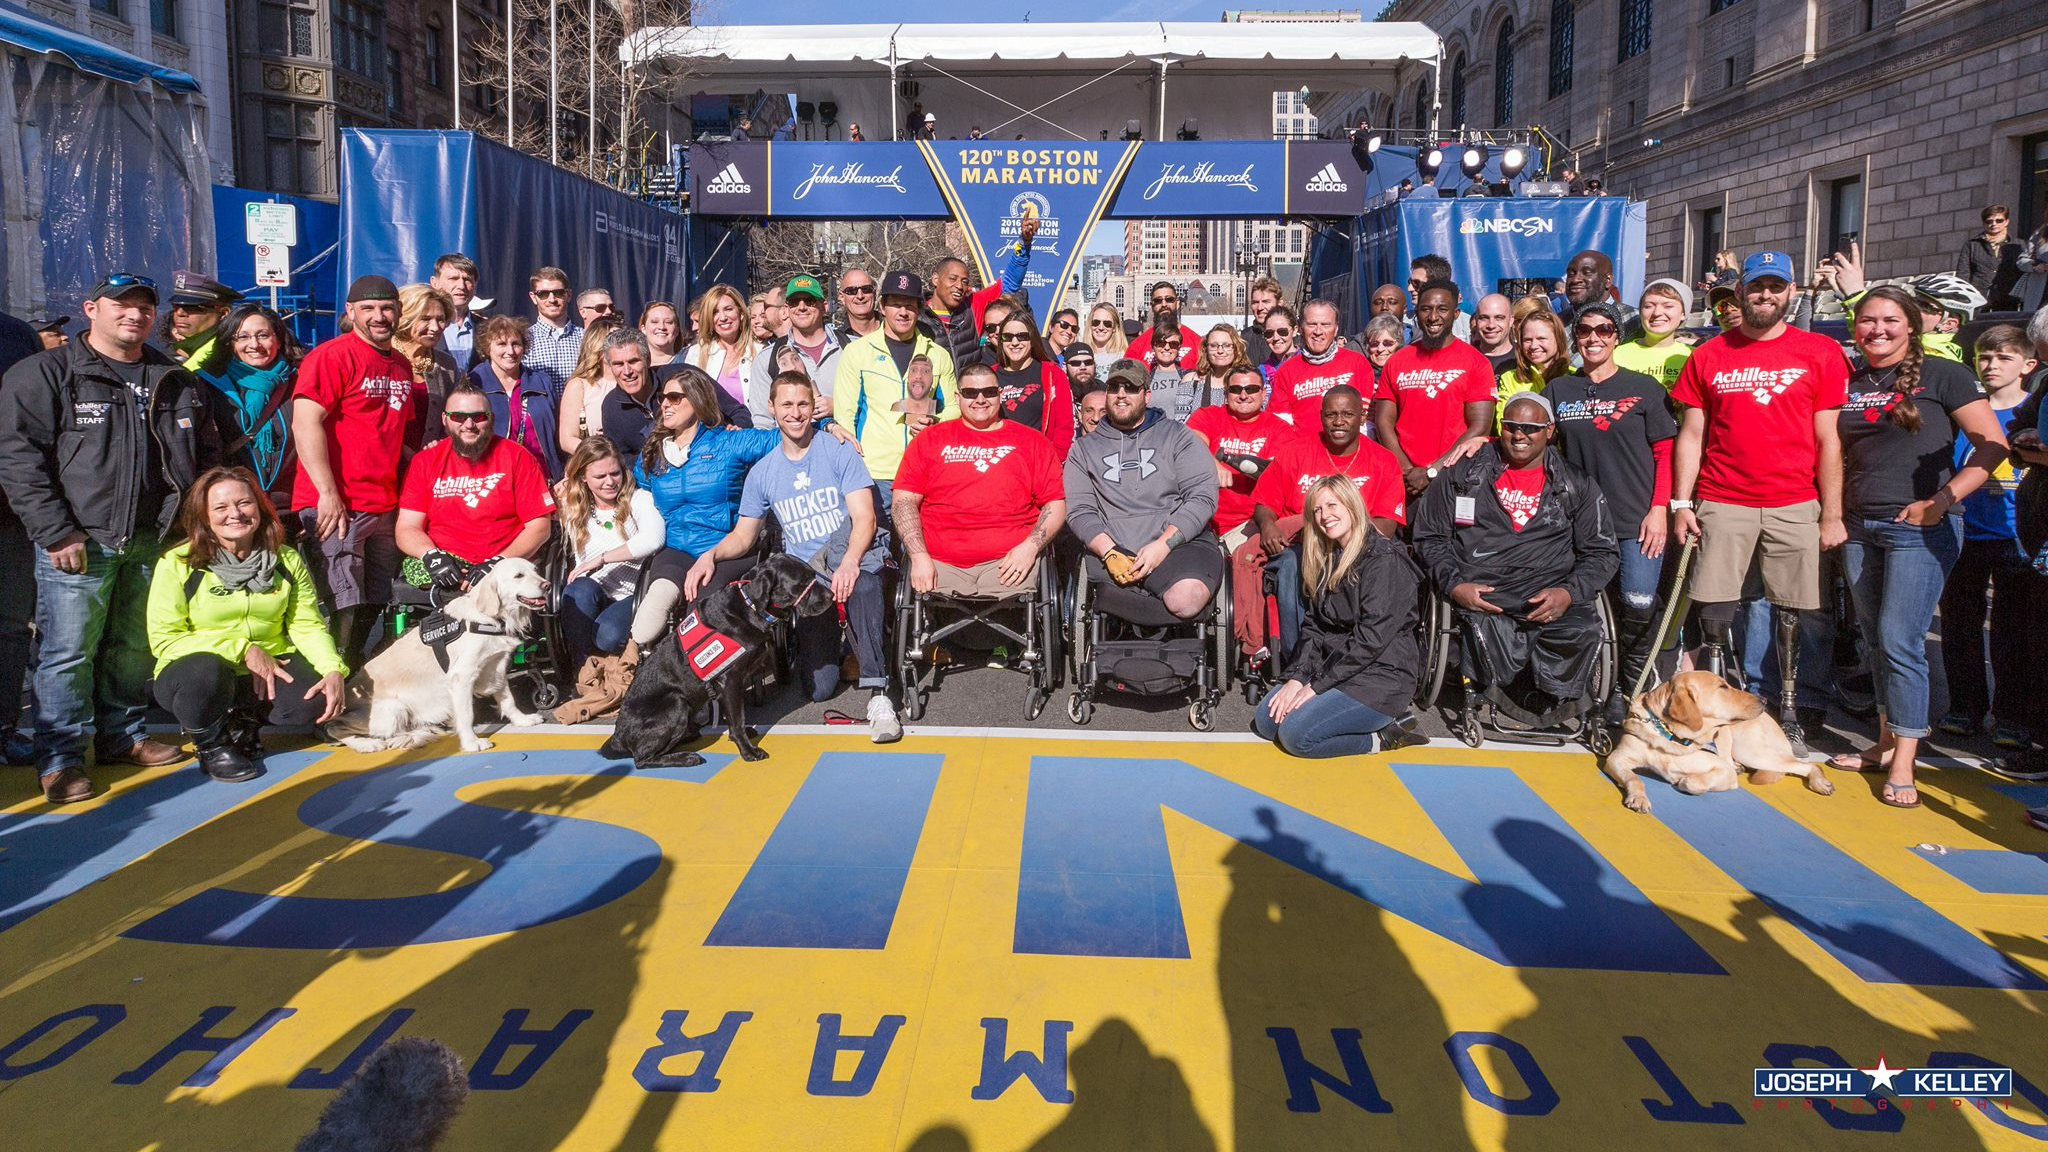 2016 JOE KELLY BOSTON MARATHON MG_3908 16x9.jpg